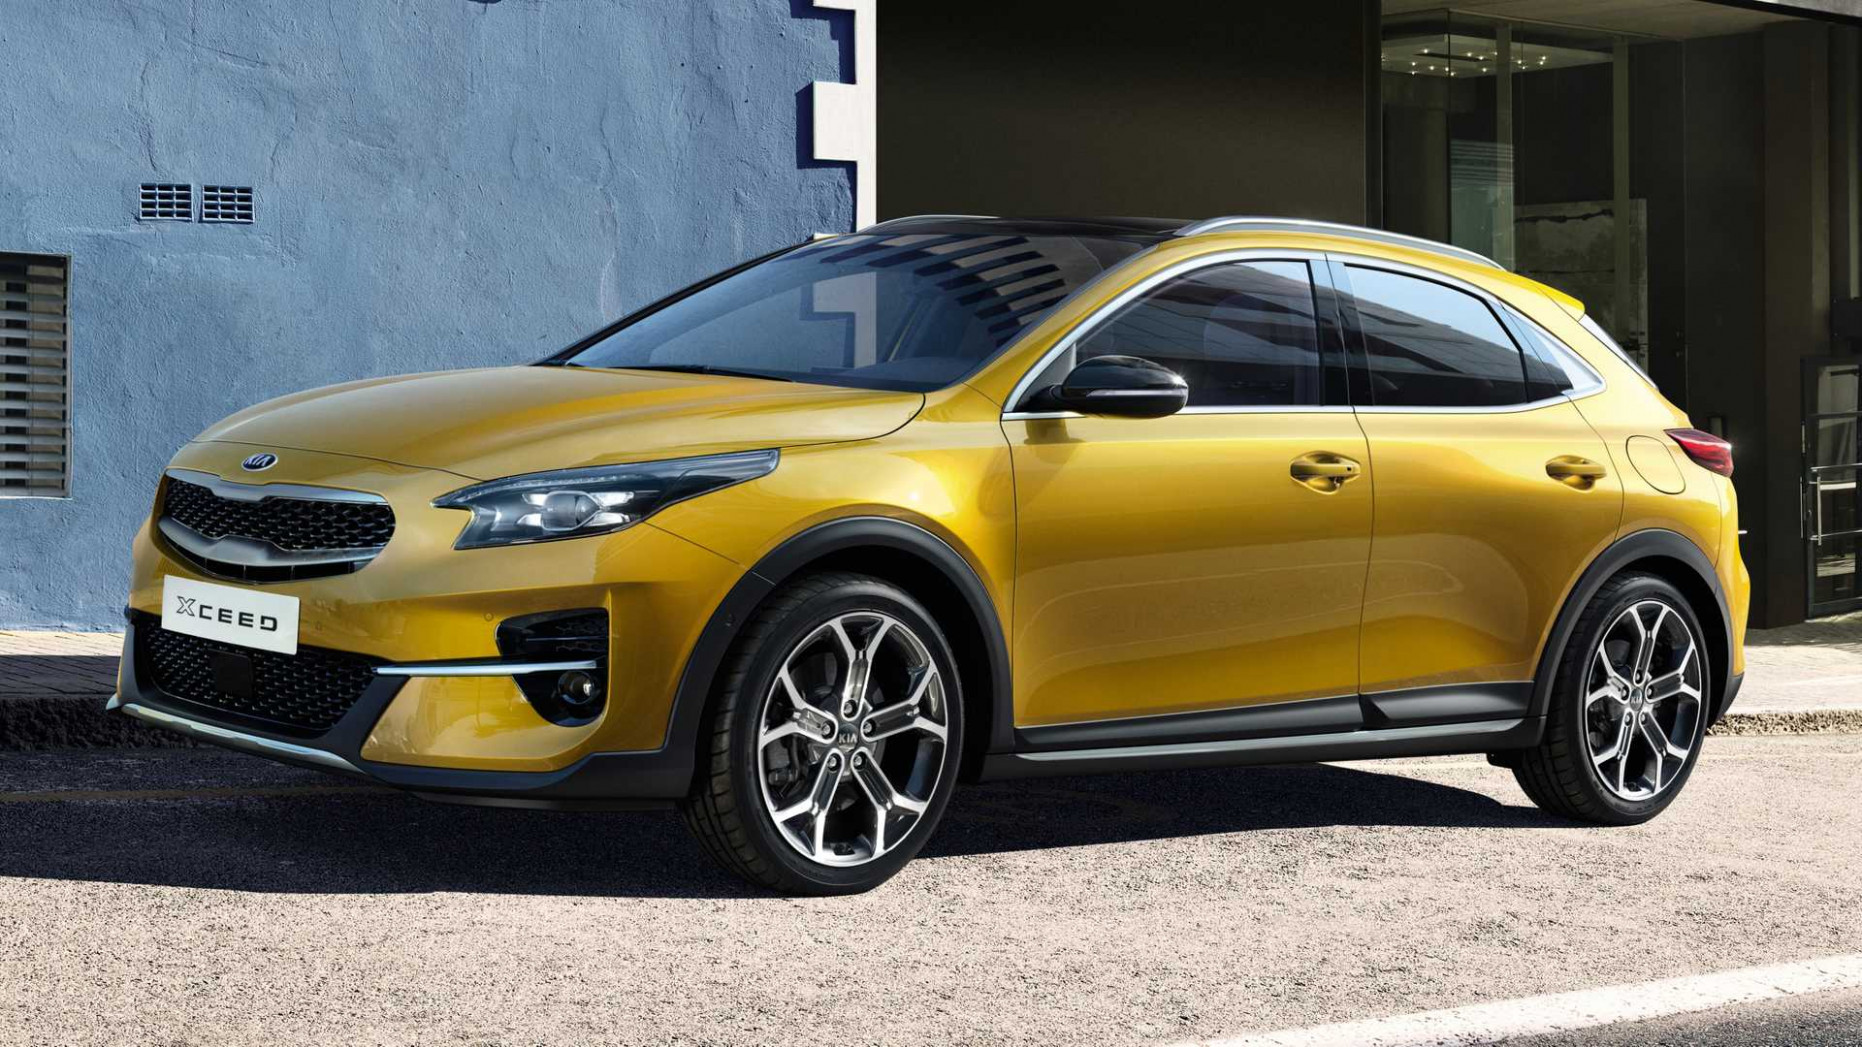 6 Kia XCeed Debuts As Stylish Compact Crossover For Europe